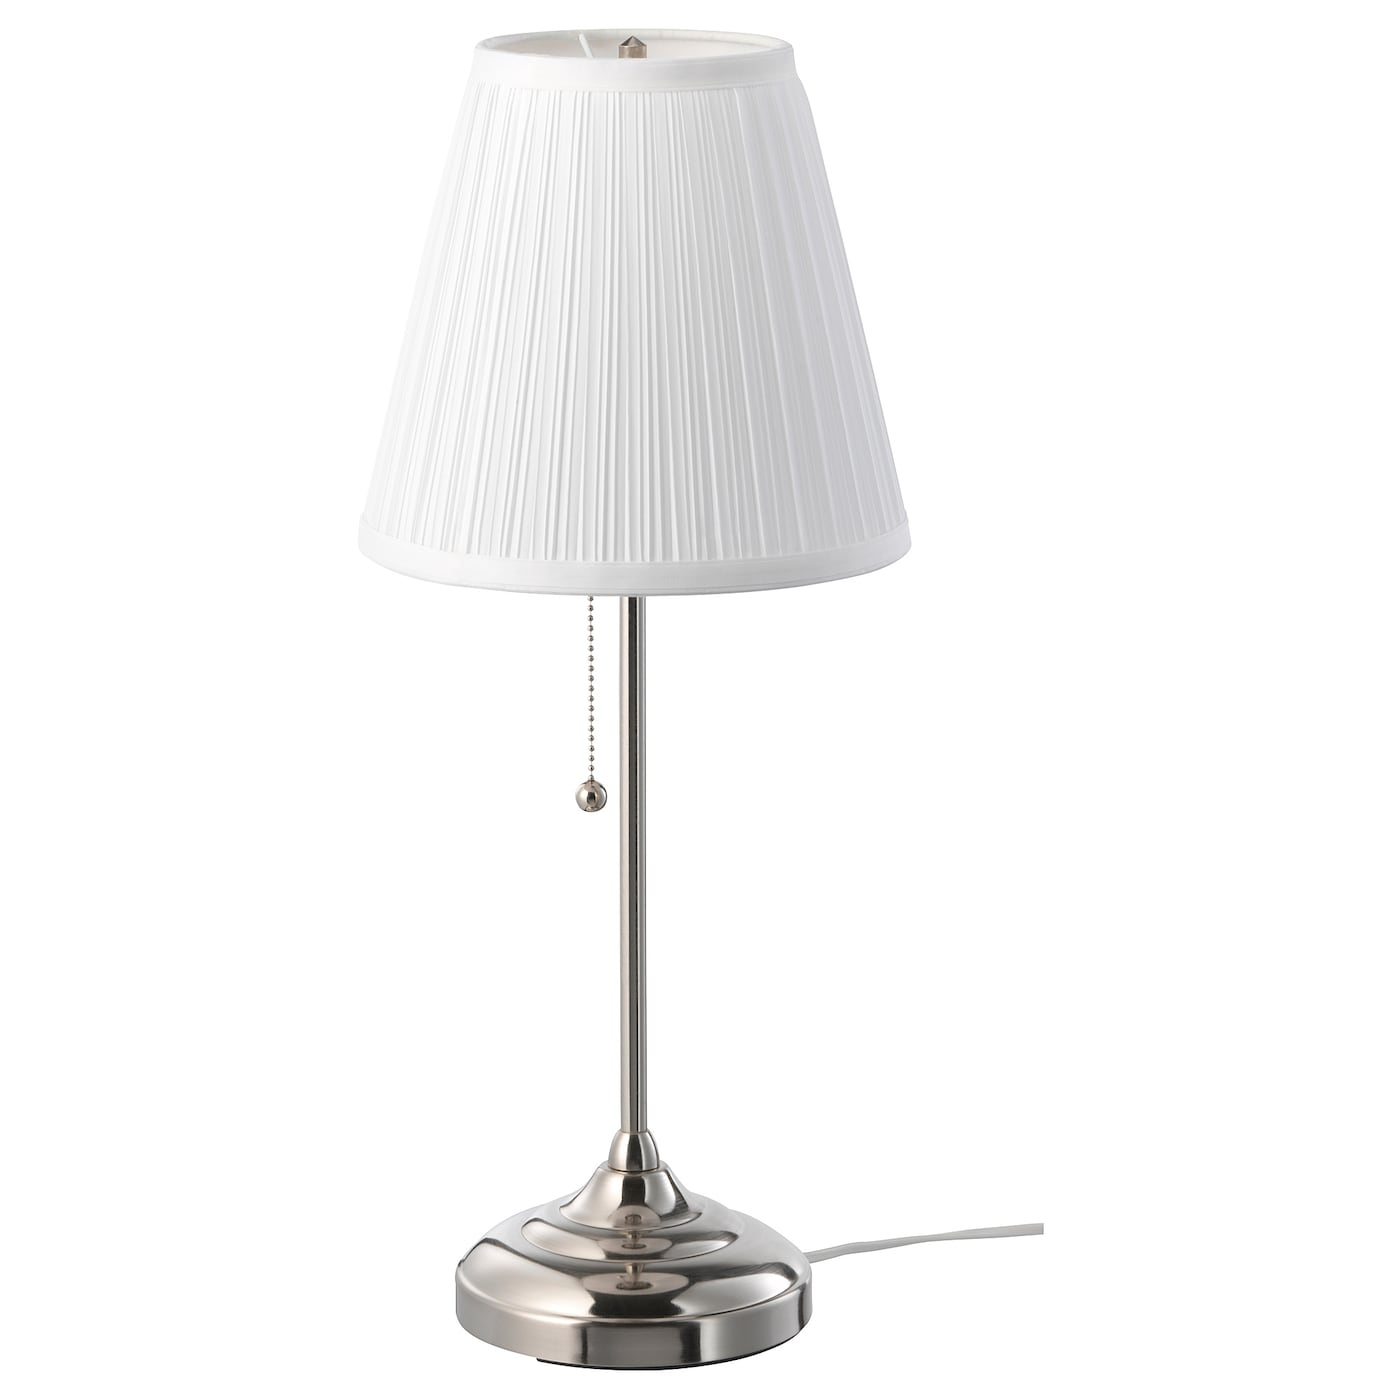 197 Rstid Table Lamp With Led Bulb Nickel Plated White Ikea